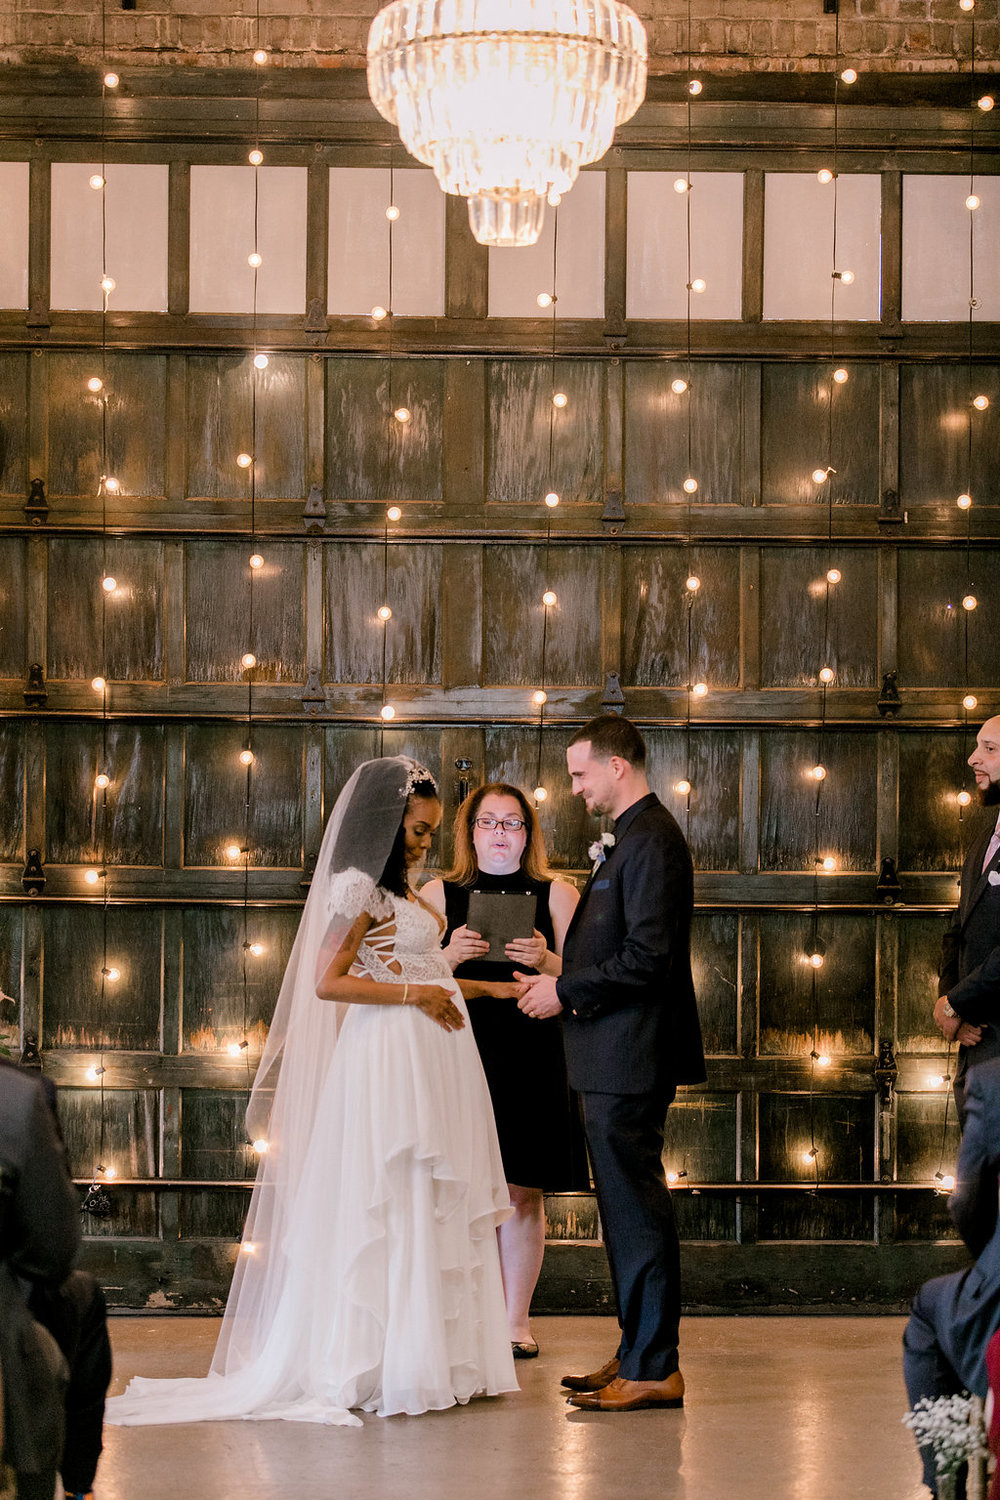 savannah-bridal-shop-i-and-b-florals-sonya-and-josh-colorful-rustic-boho-wedding-florals-at-soho-south-cafe-savannah-ga-wedding-danielle-george-photography-18.JPG